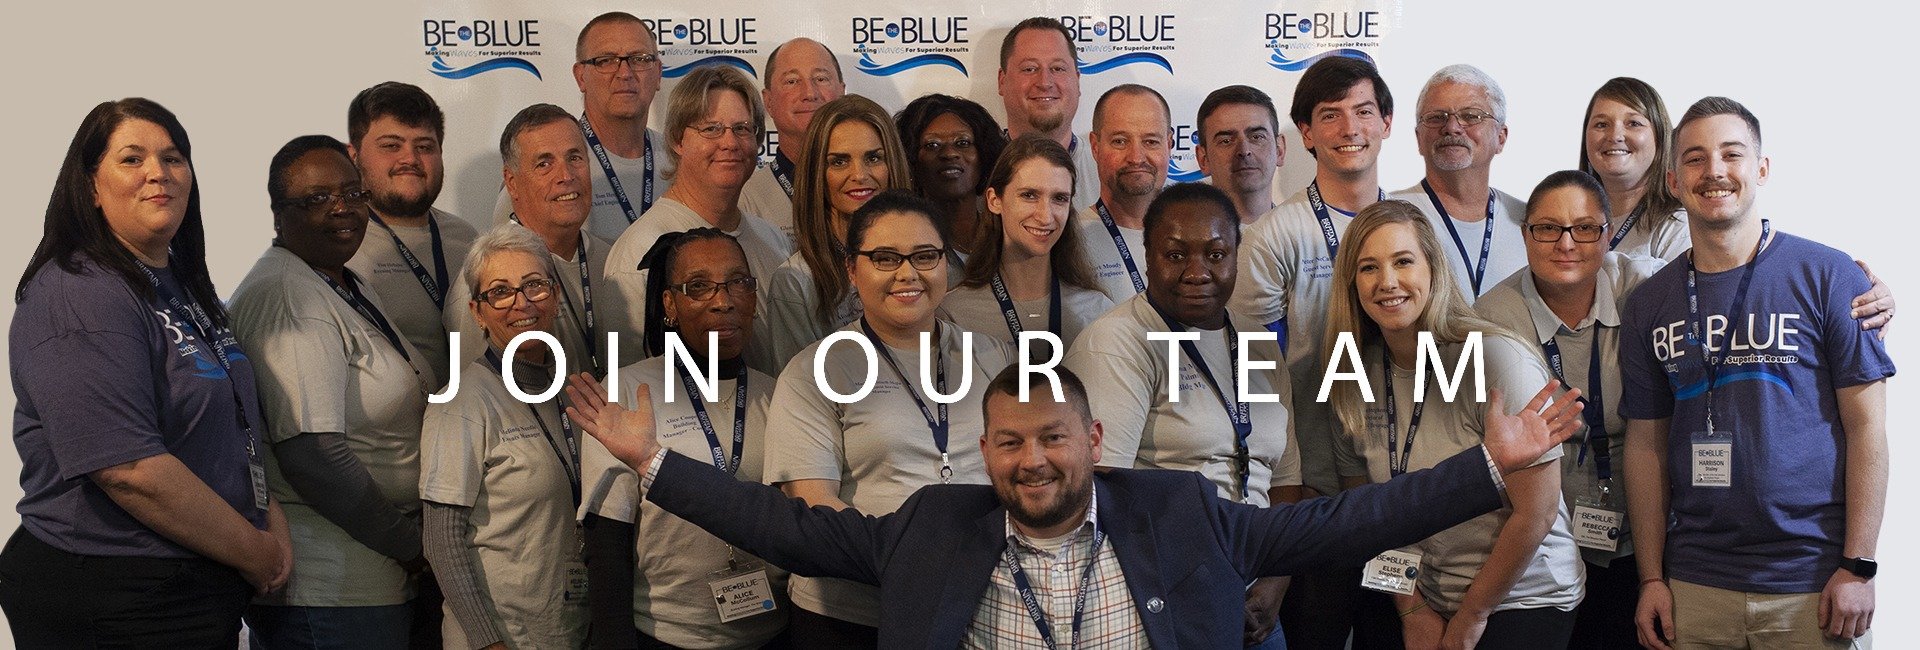 BRH-Join-Our-Team-1920x650_F